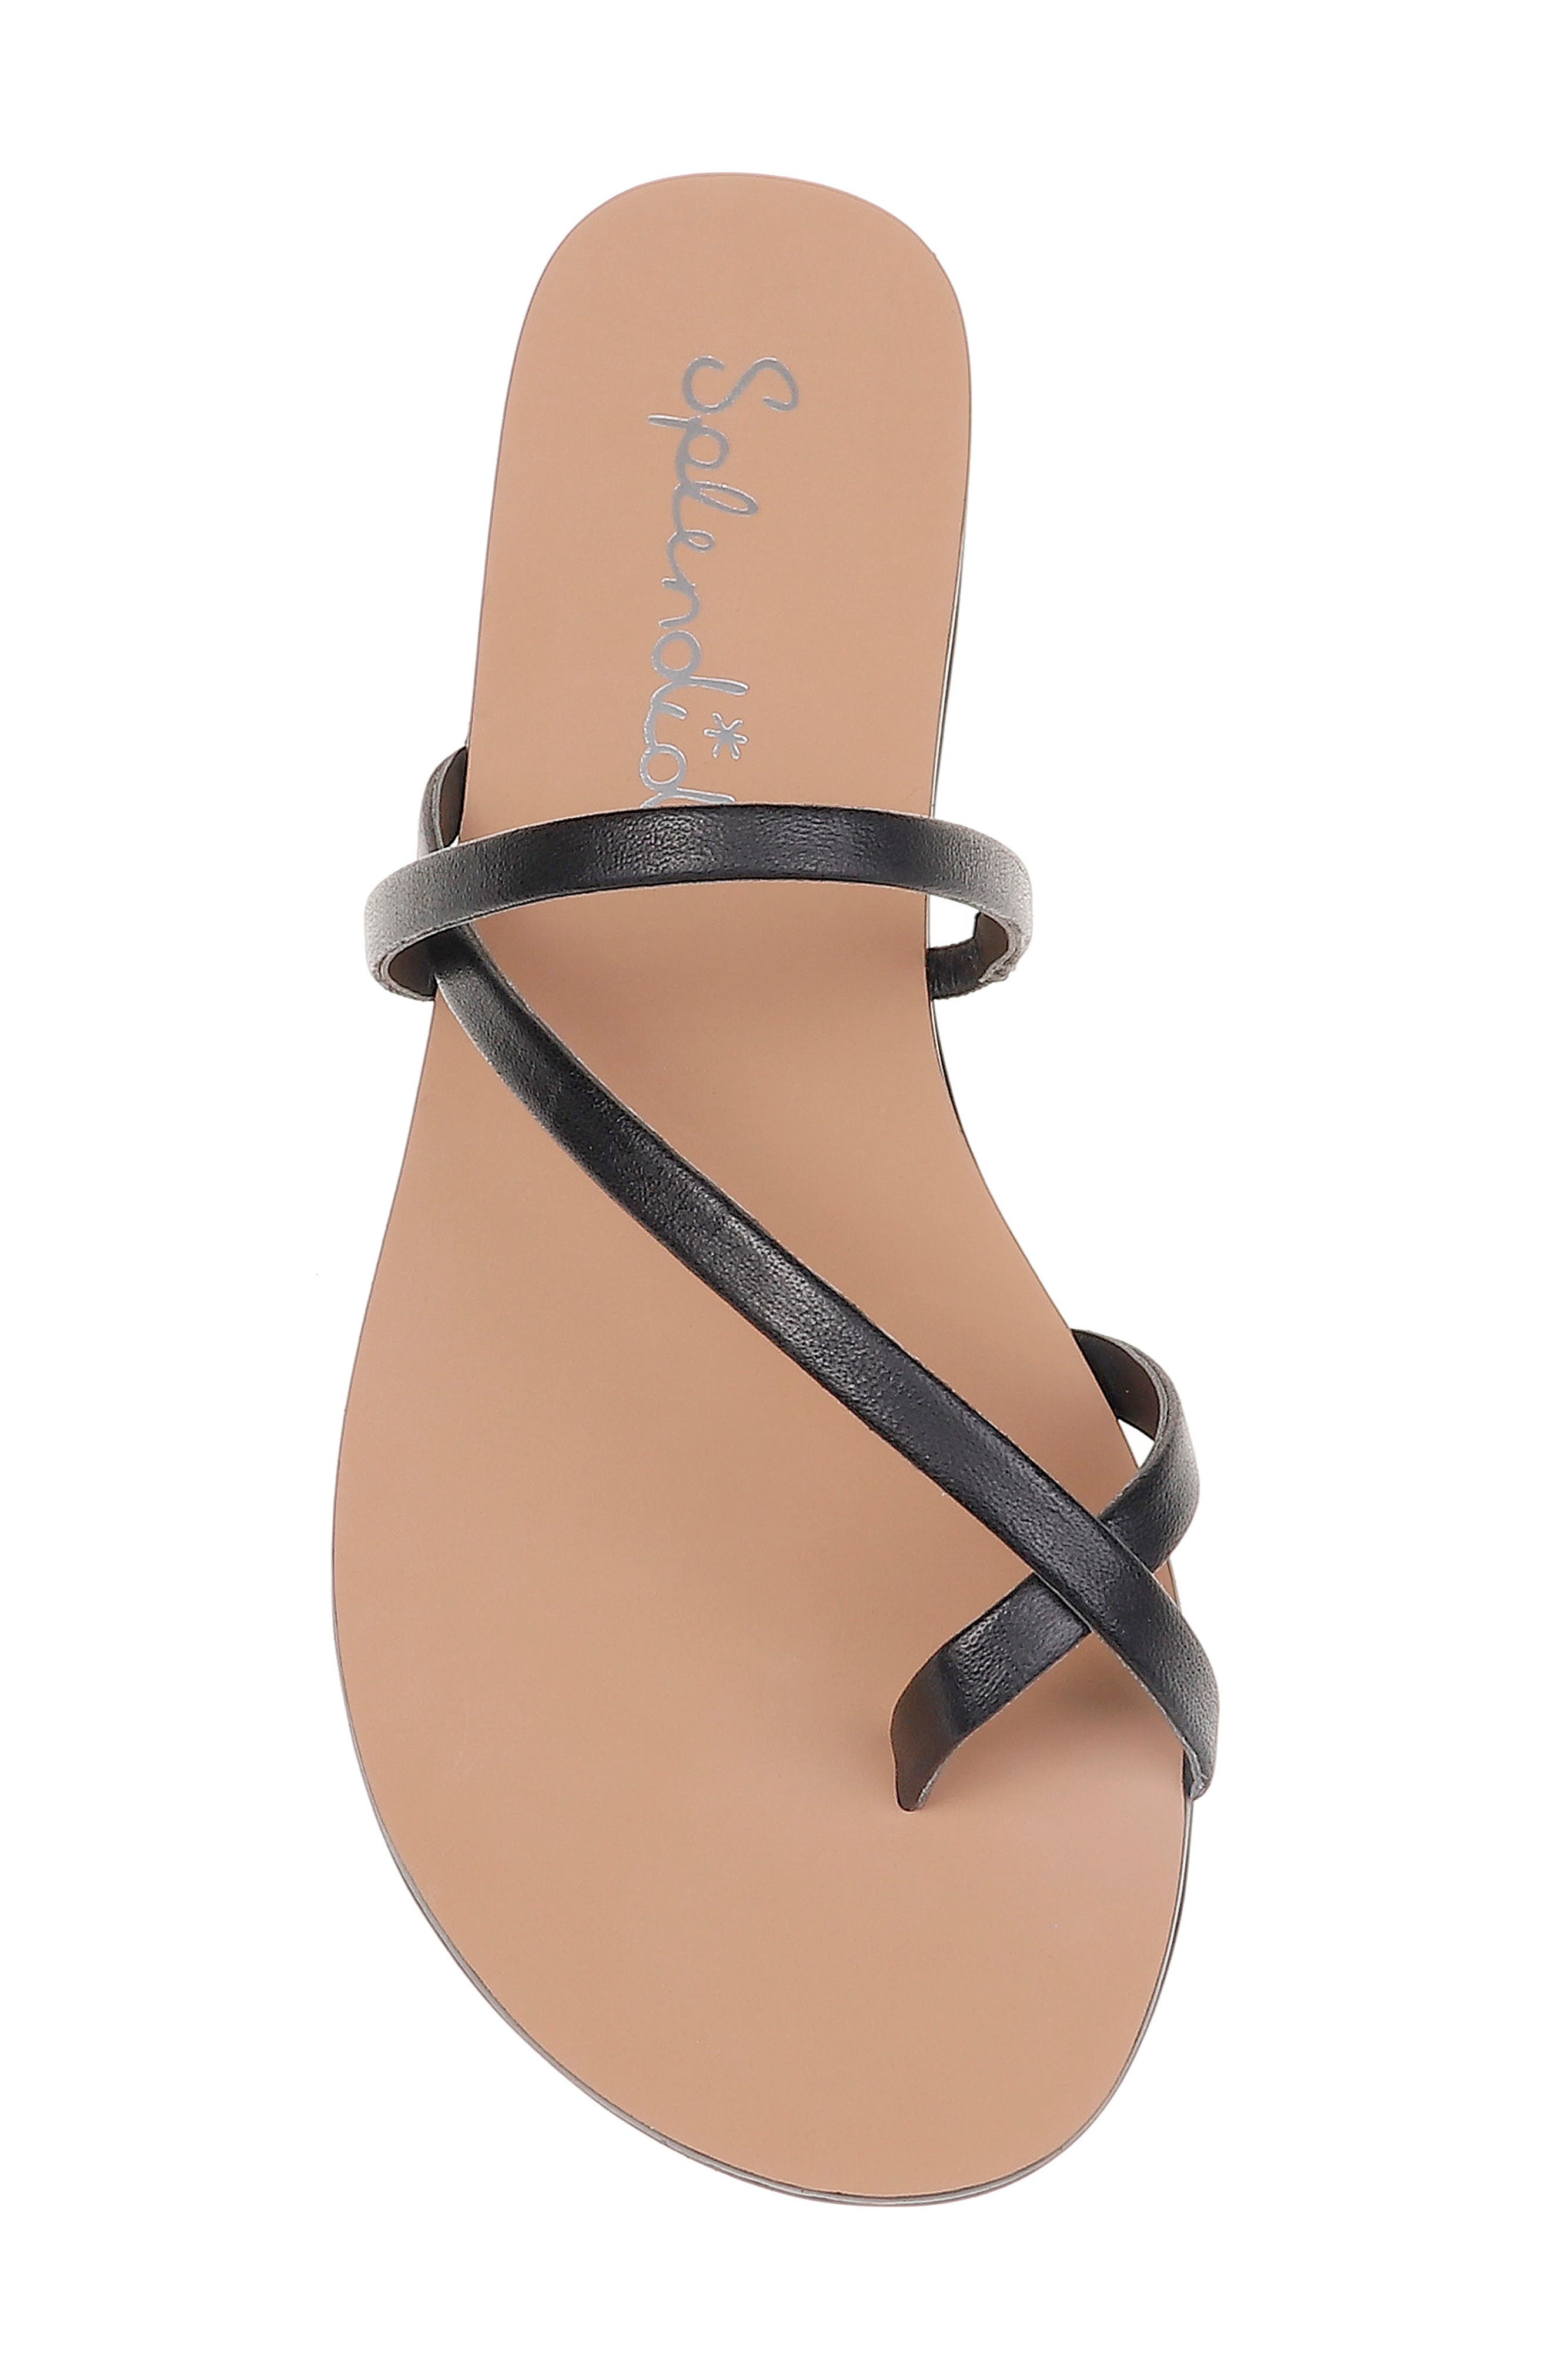 SPLENDID, Trenton Strappy Slide Sandal, Alternate thumbnail 5, color, BLACK LEATHER